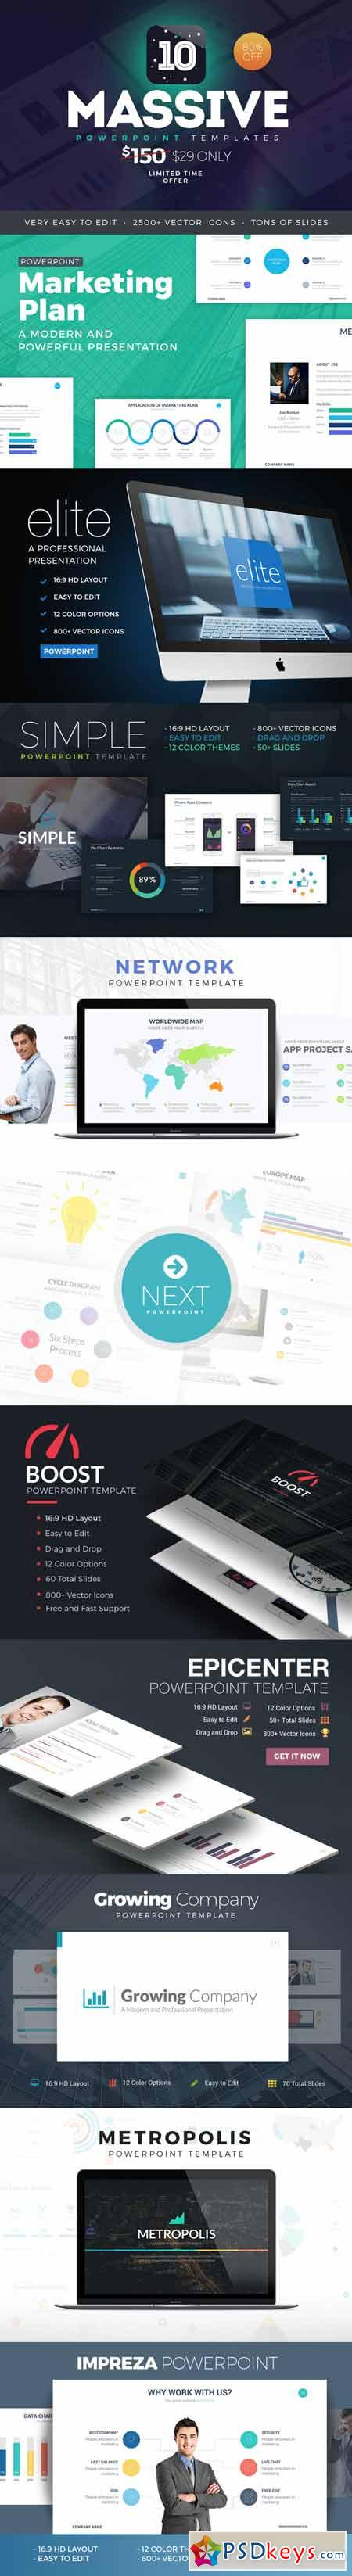 Massive PowerPoint Template Bundle 412060